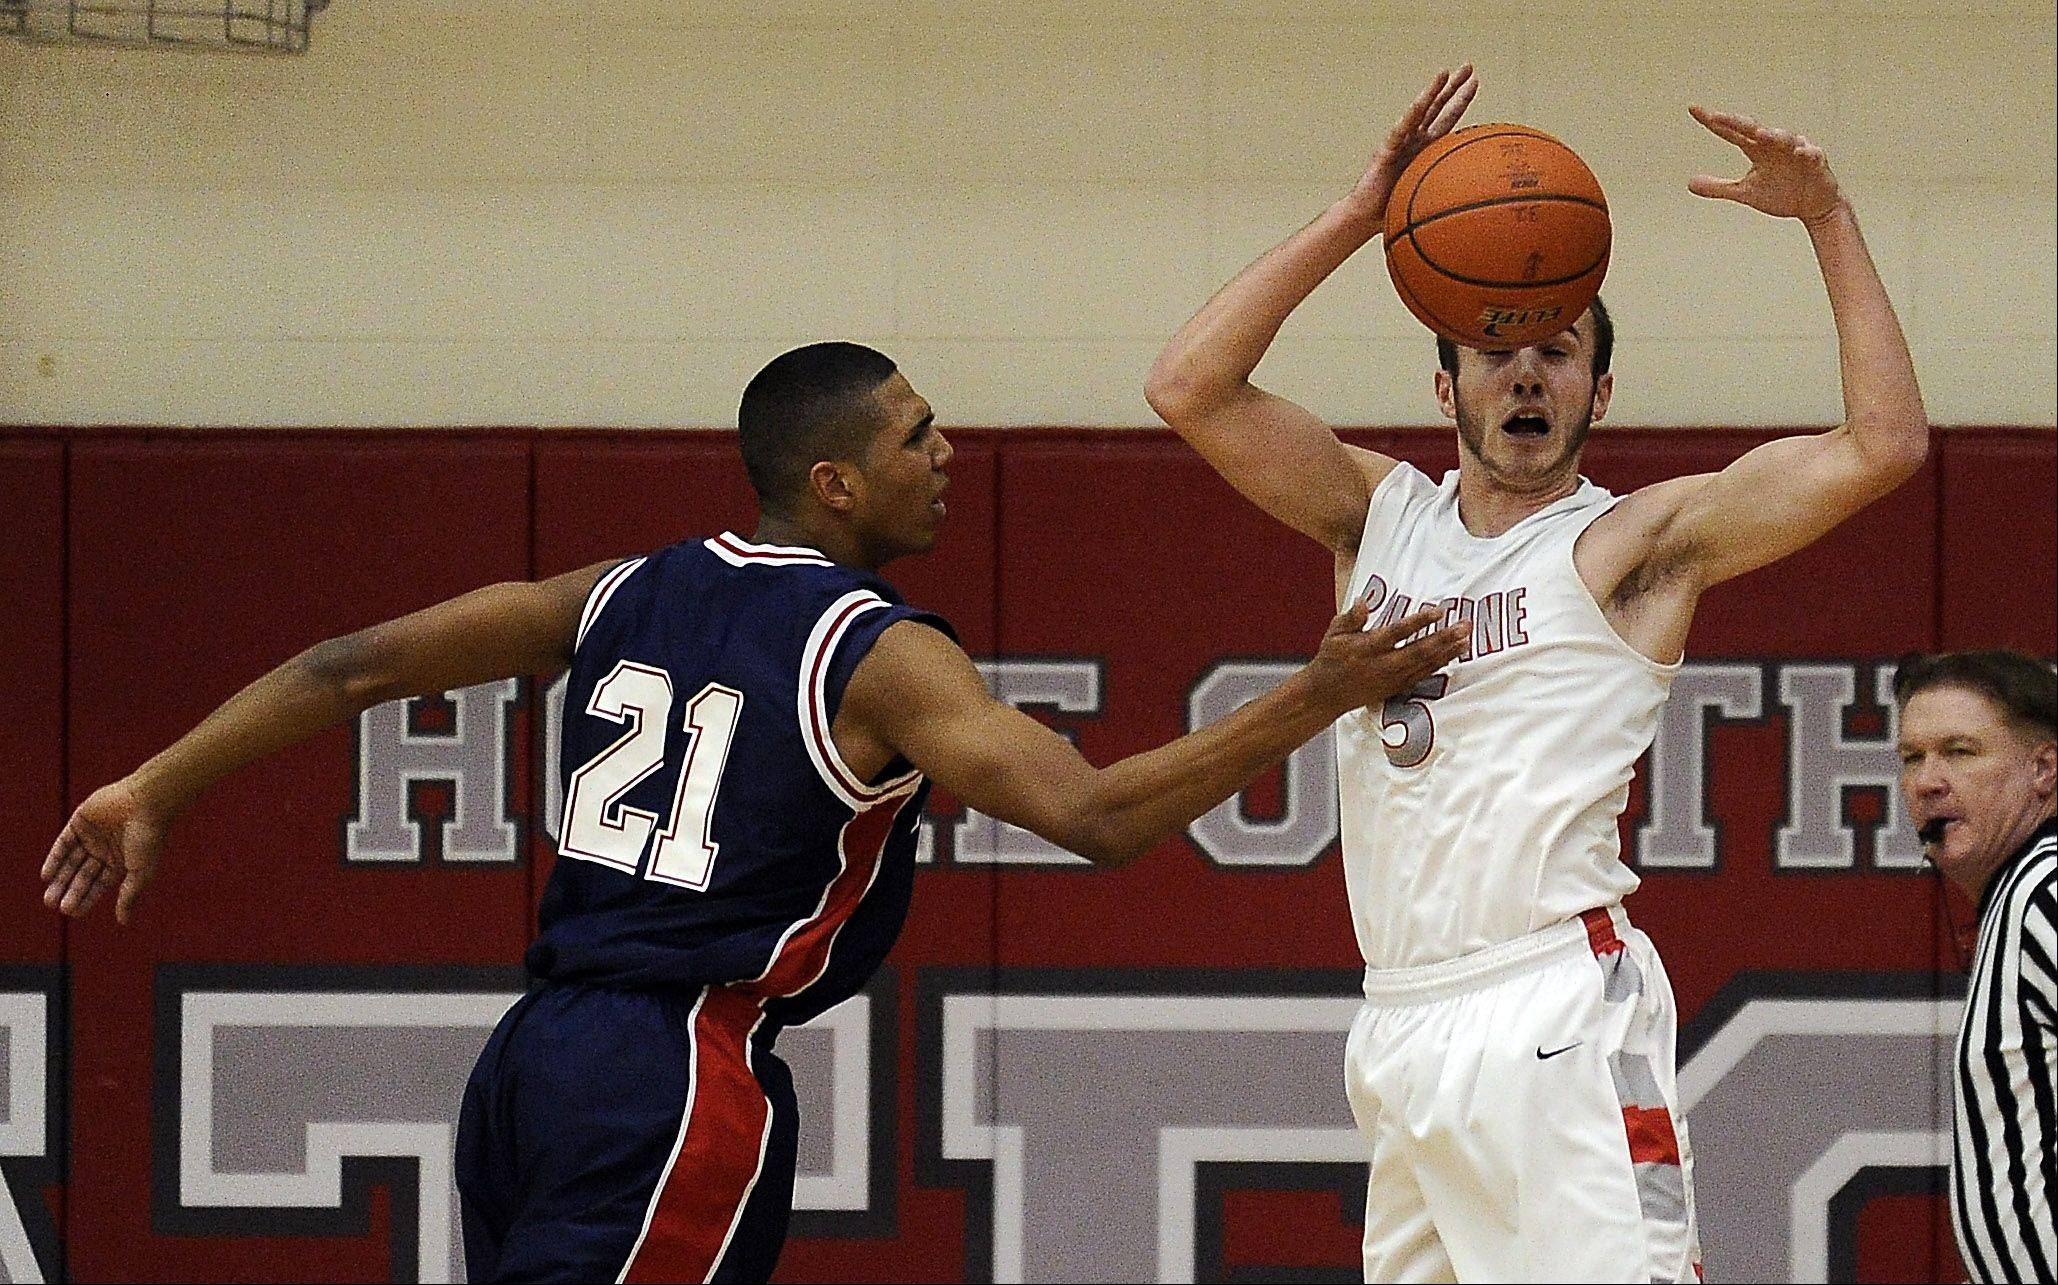 Palatine's Chris Macahon tries to control the ball and keep it away from Conant's D'Angelo McBride in the first half.